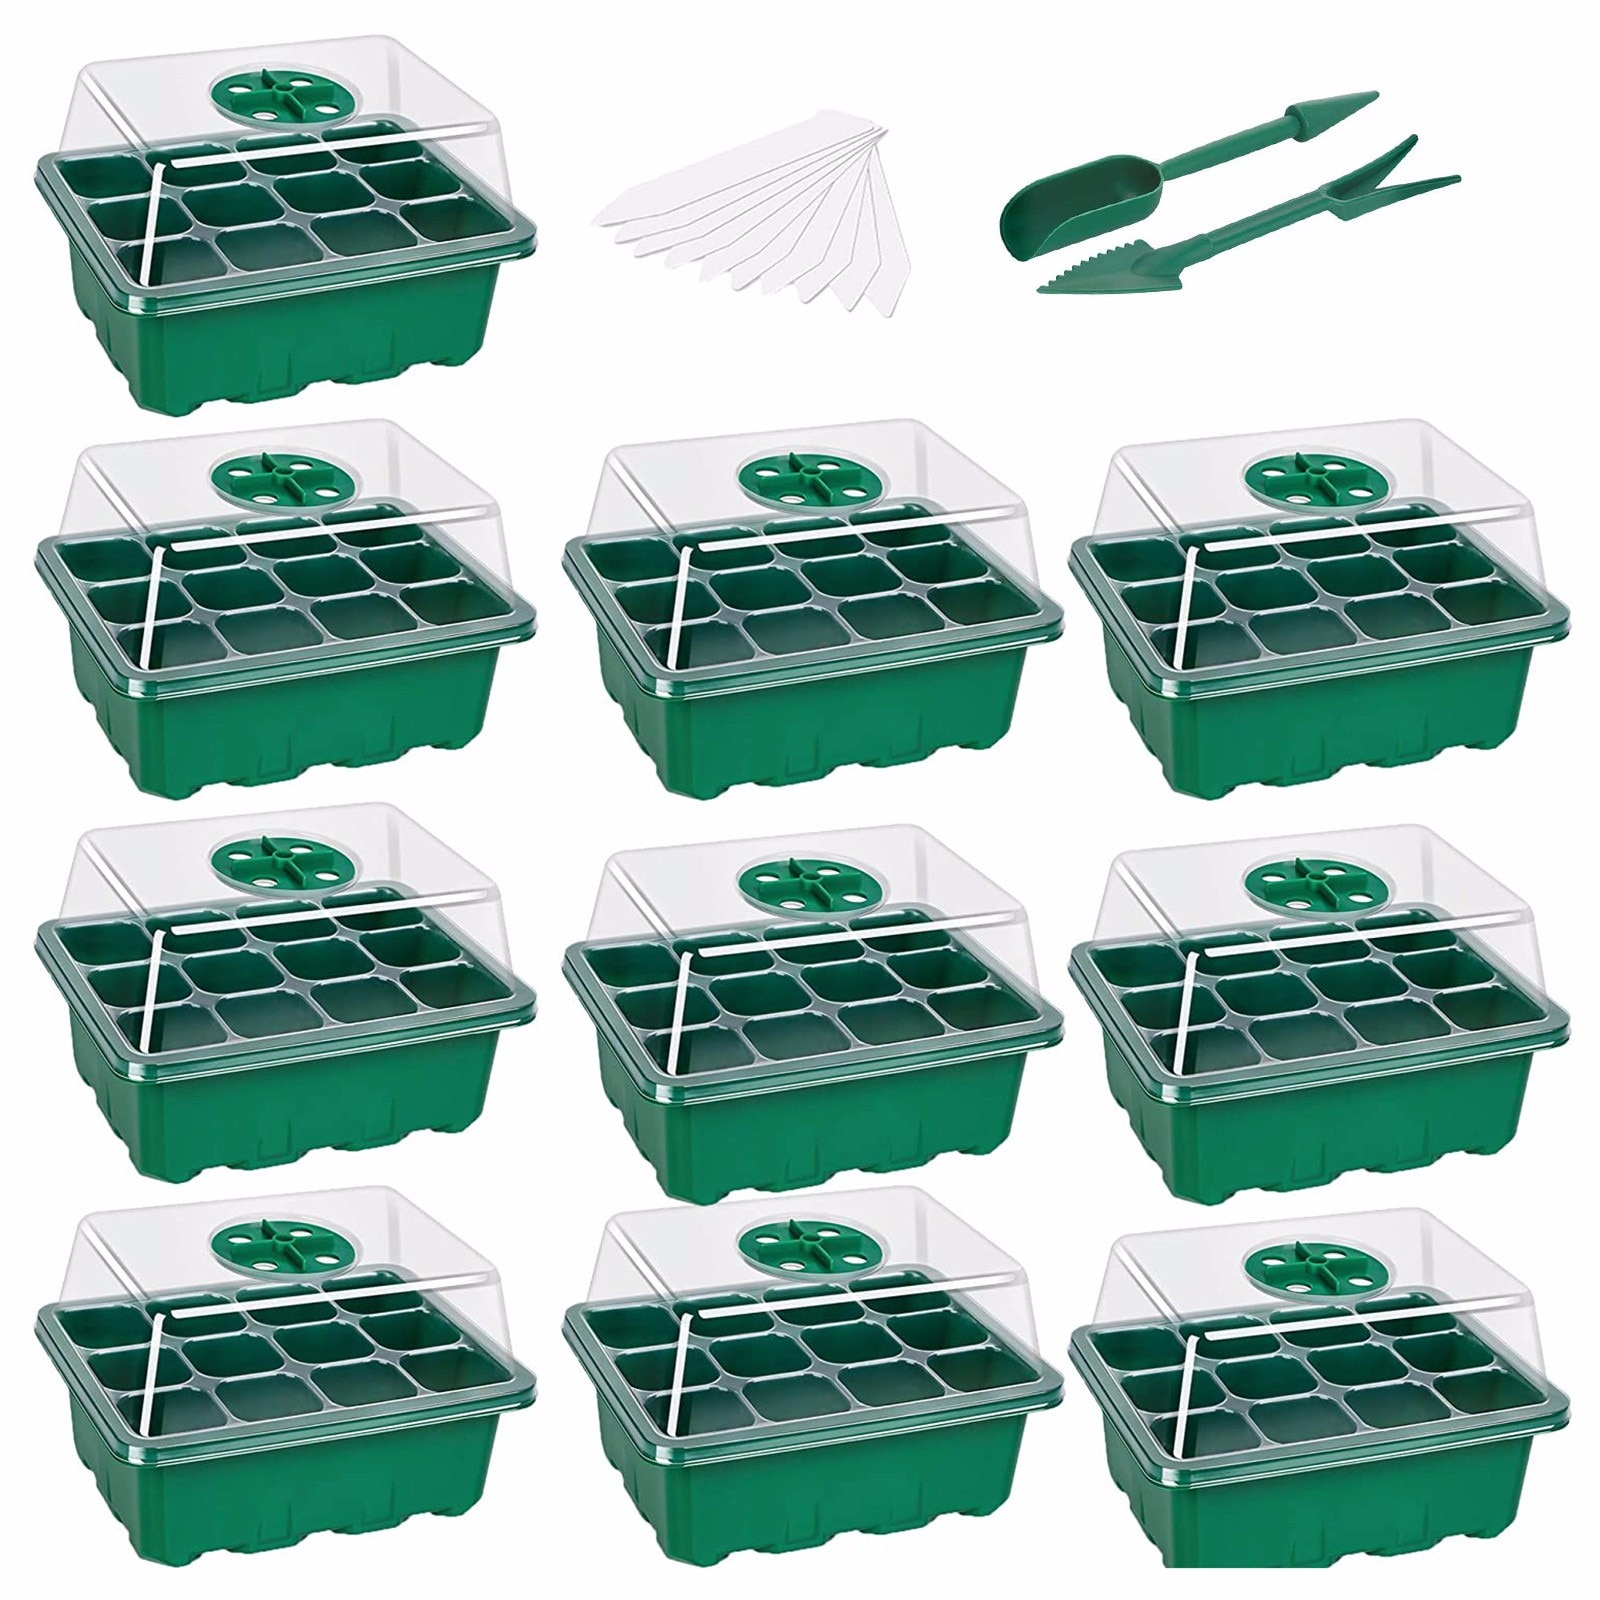 40# 10-pack Seed Starter Trays Nursery Pots Seedling Tray Humidity Adjustable Switch Garden Decor Ac